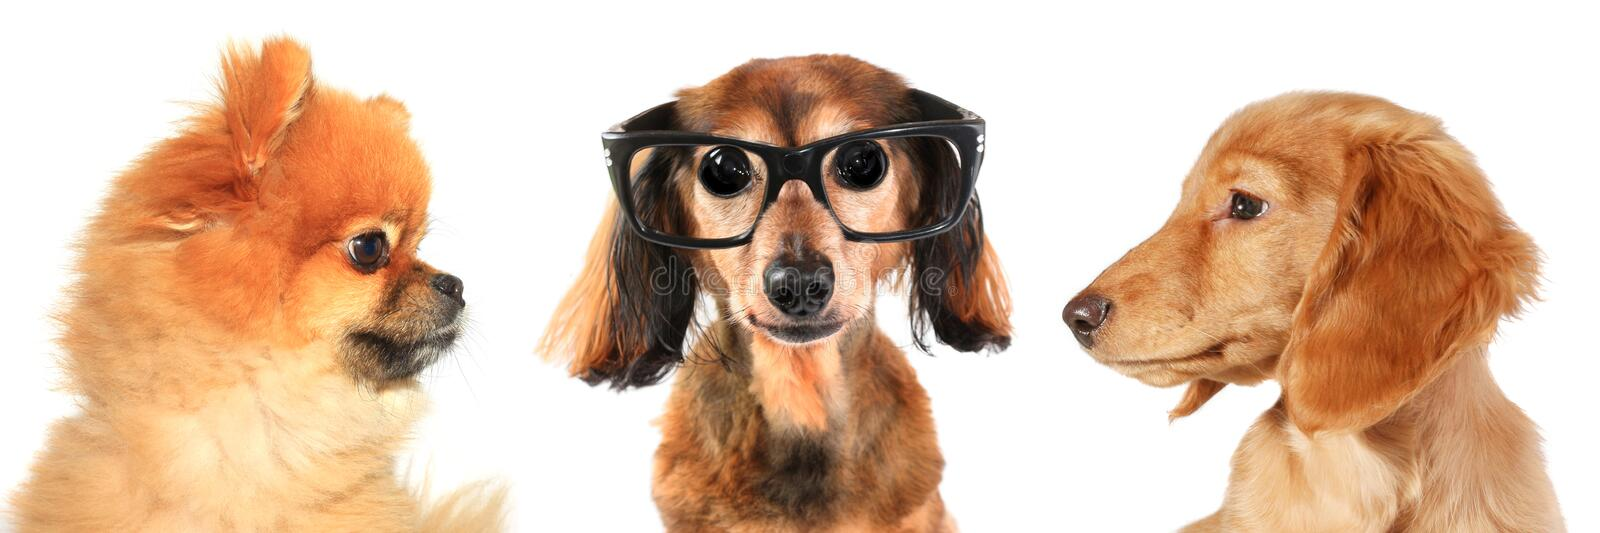 Download Three dogs stock photo. Image of smart, dachshund, brown - 8308504